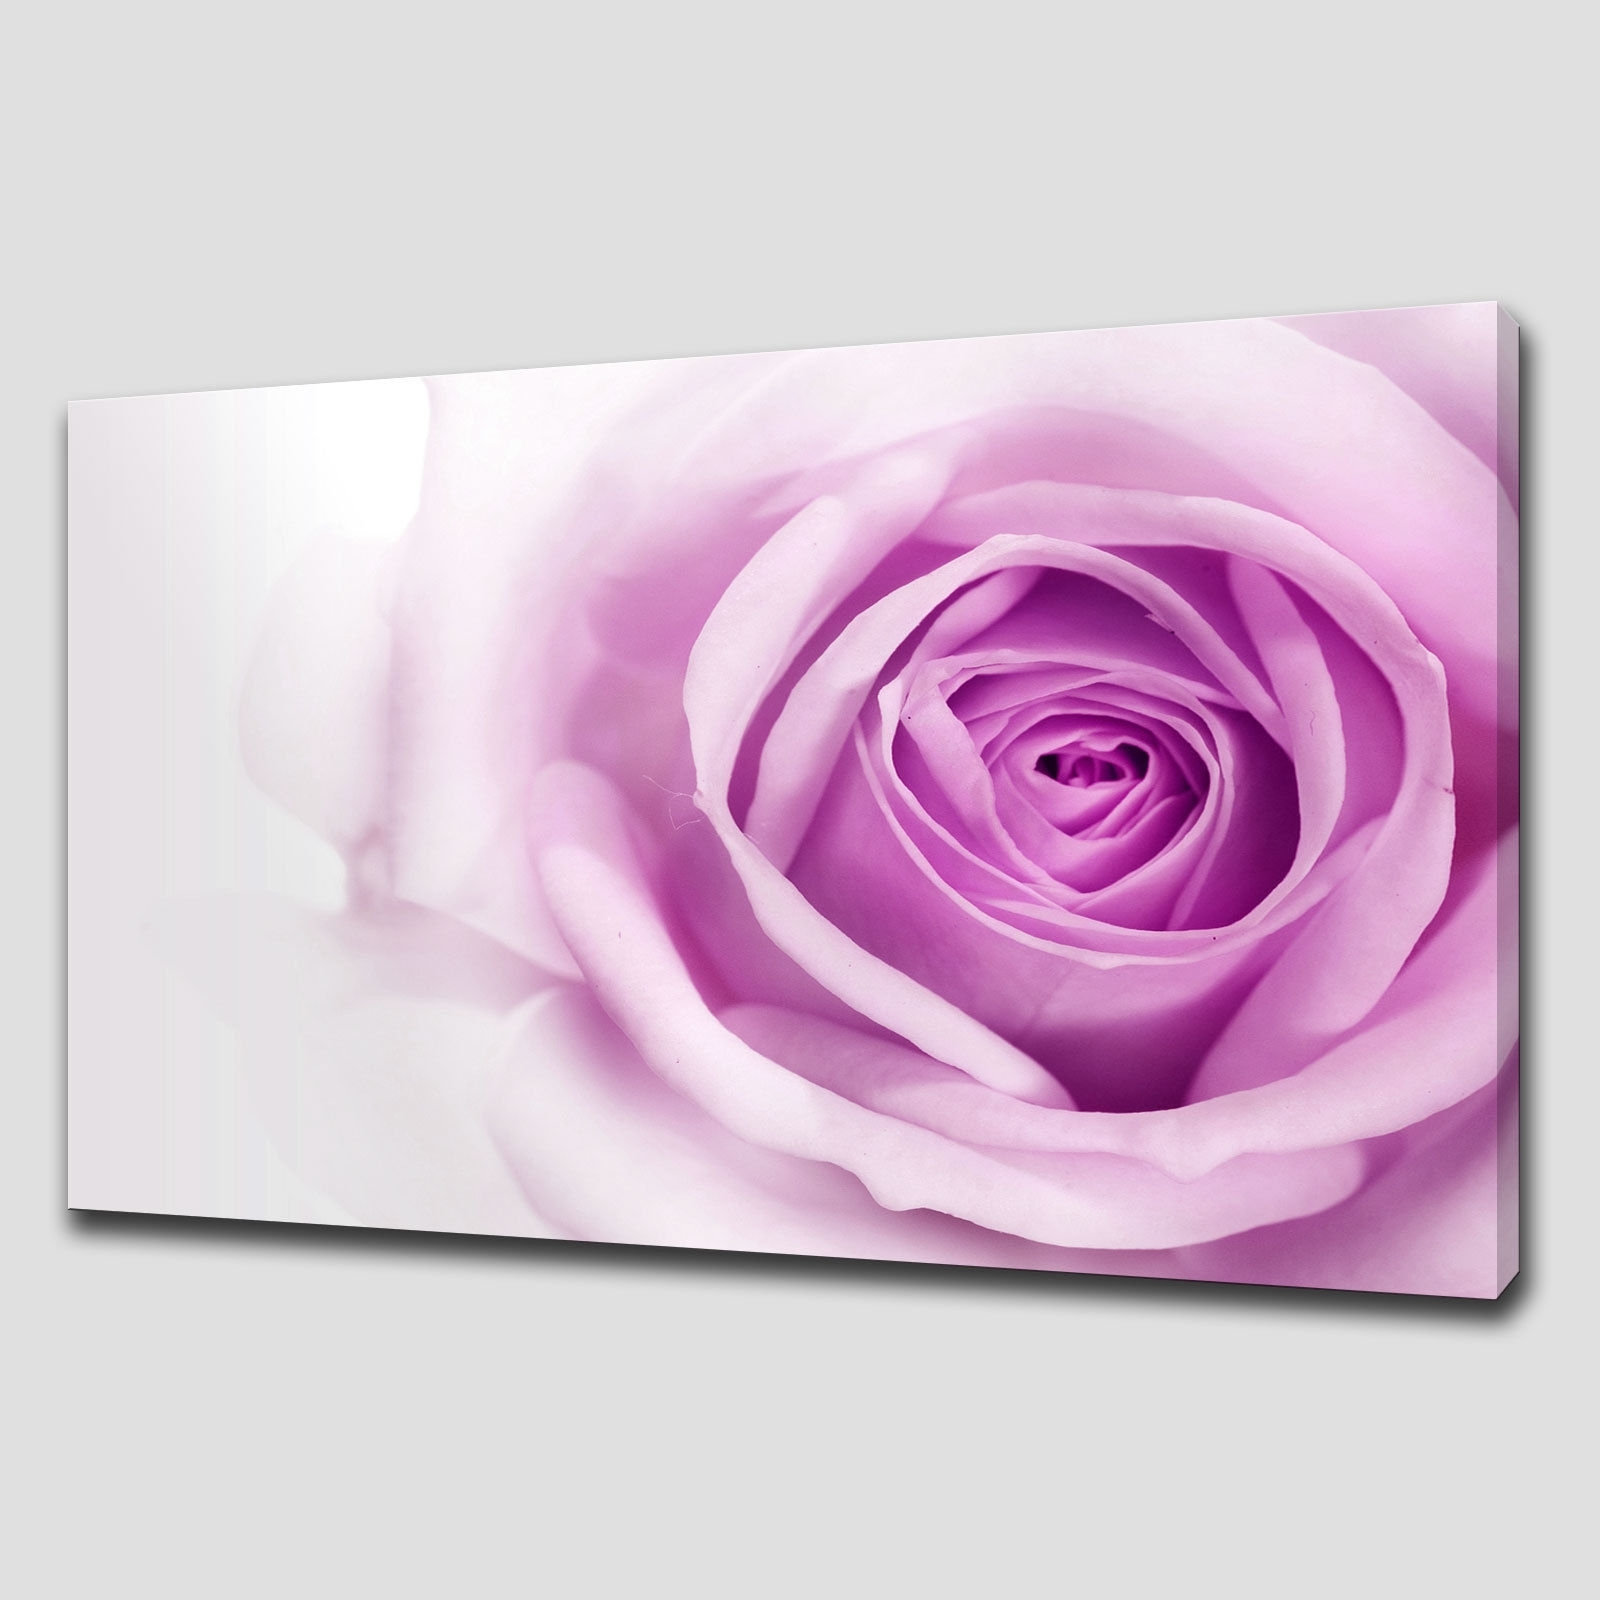 Wall Art Designs: Decor Red Rose Canvas Wall Art Large Oil Inside Most Recently Released Roses Canvas Wall Art (View 14 of 15)